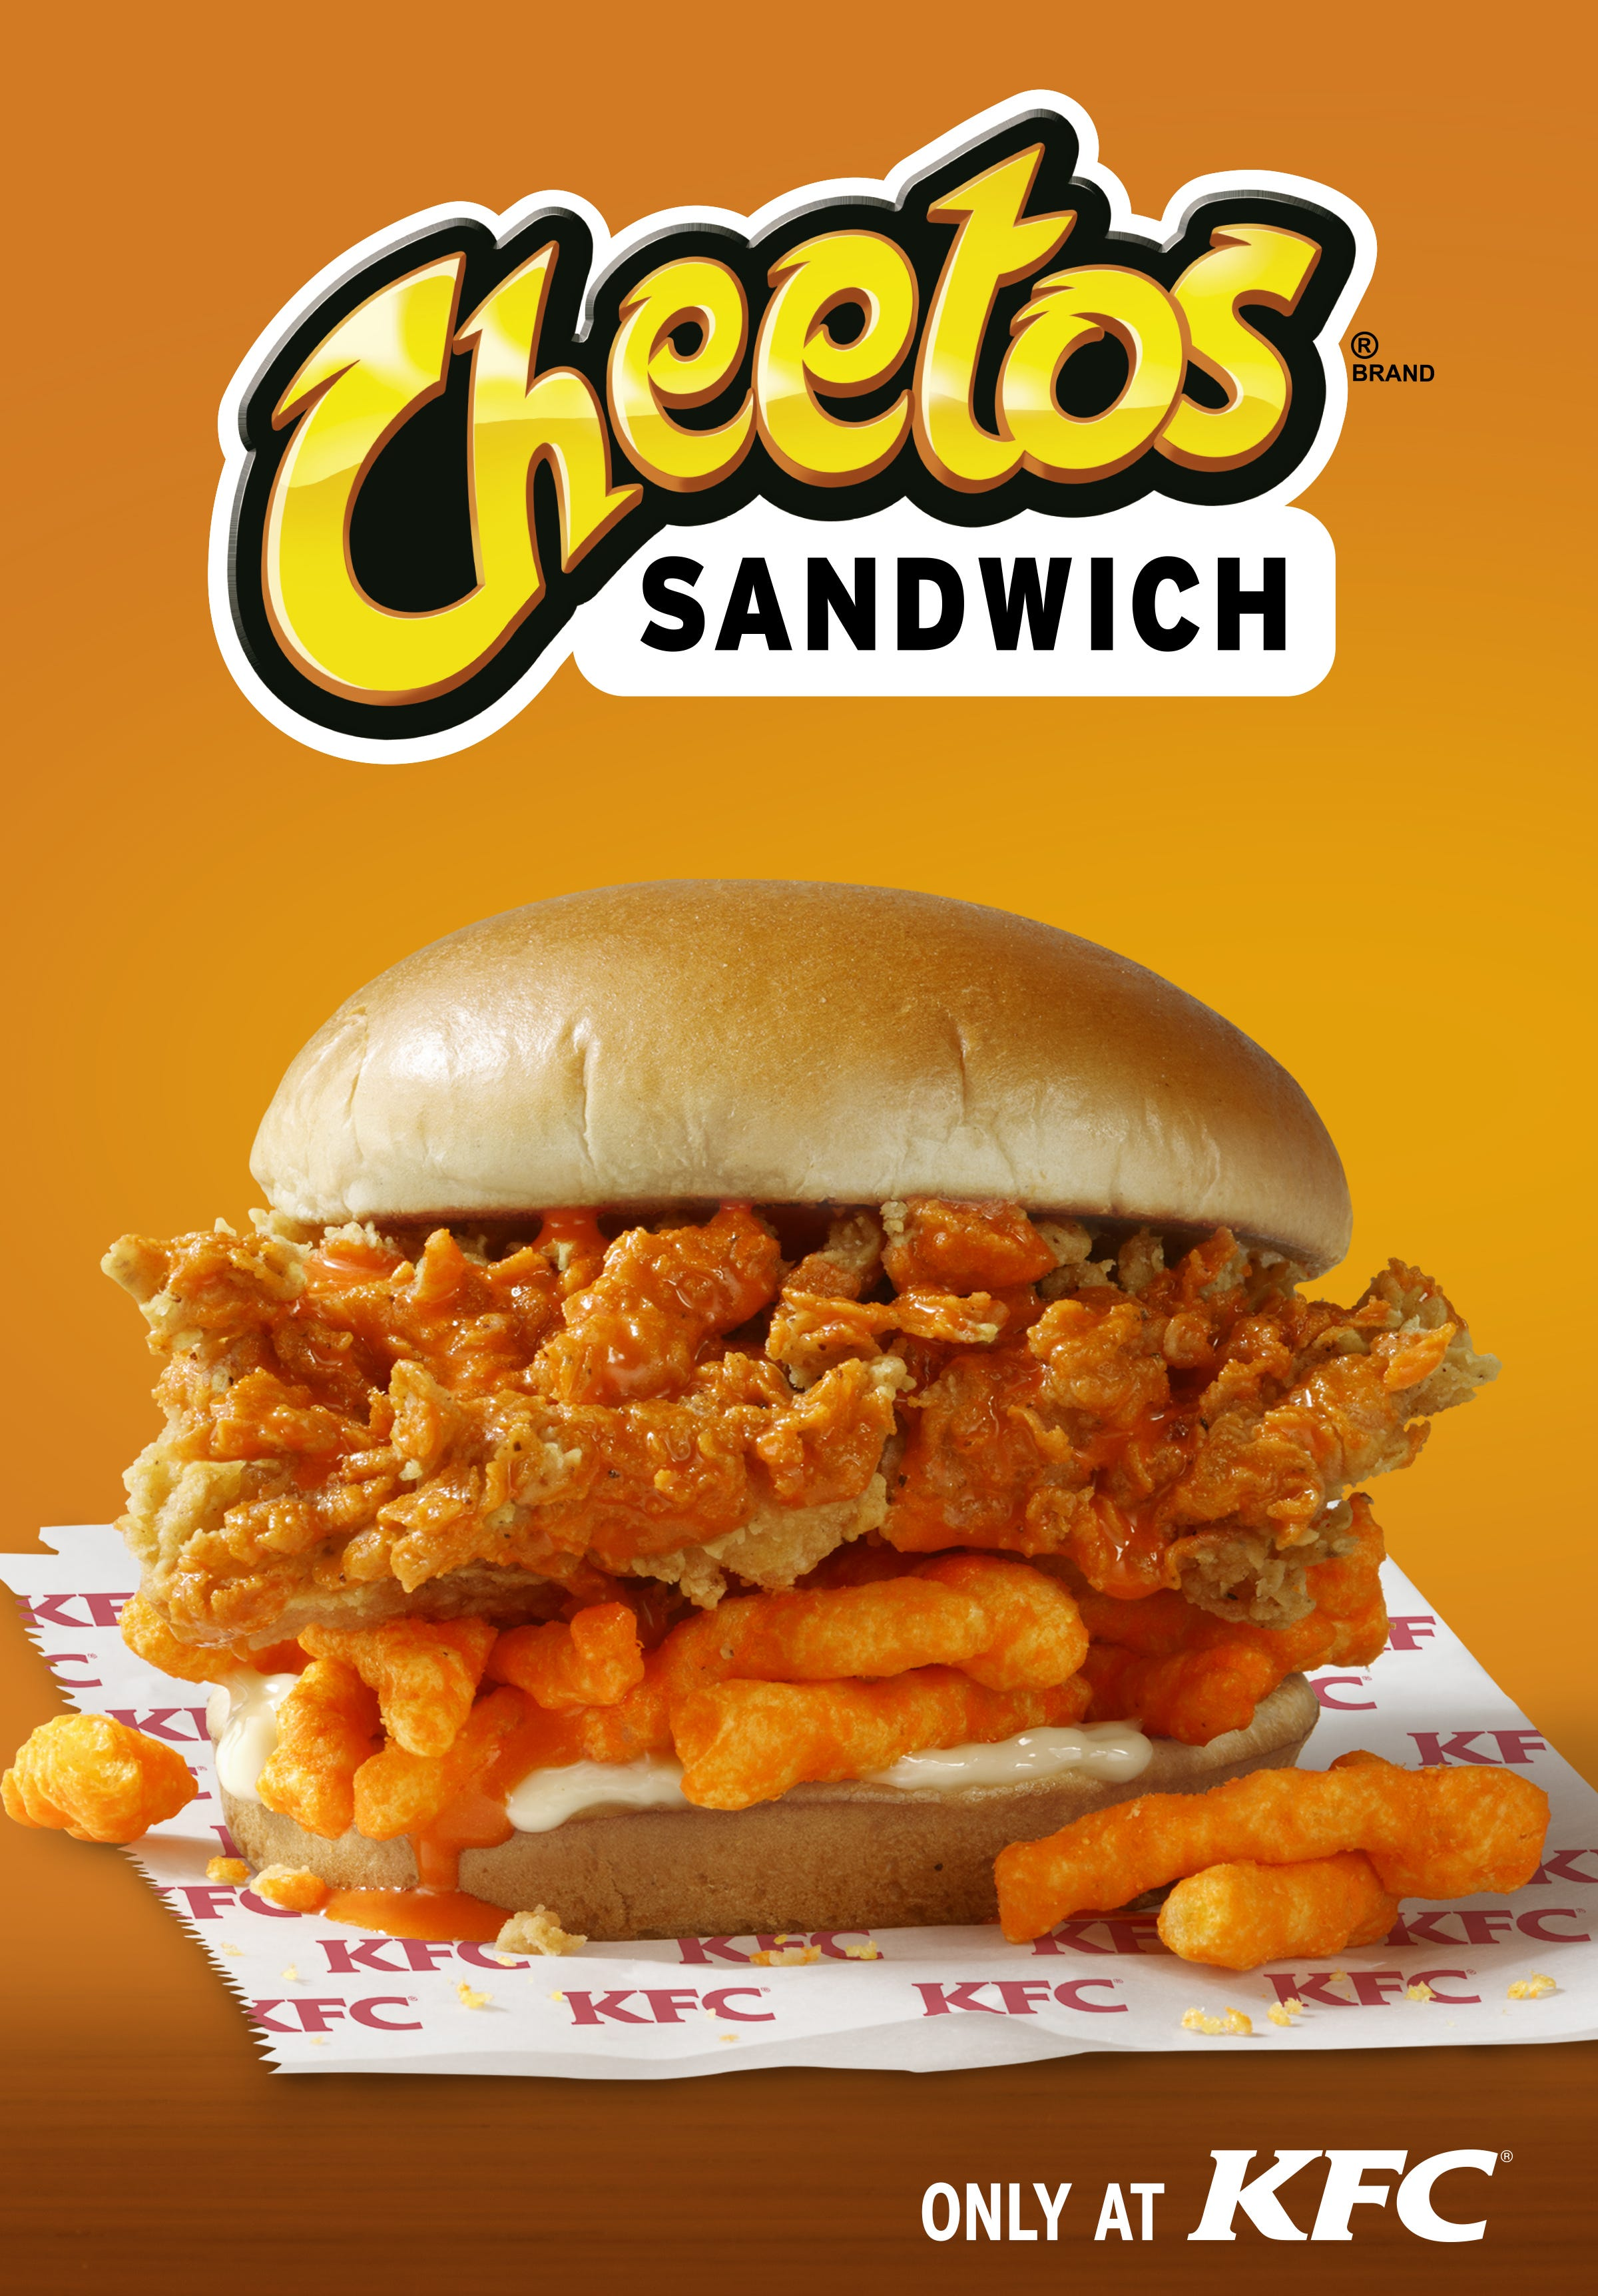 KFC's Cheetos Sandwich sounds fun, but it's available in only parts of three states